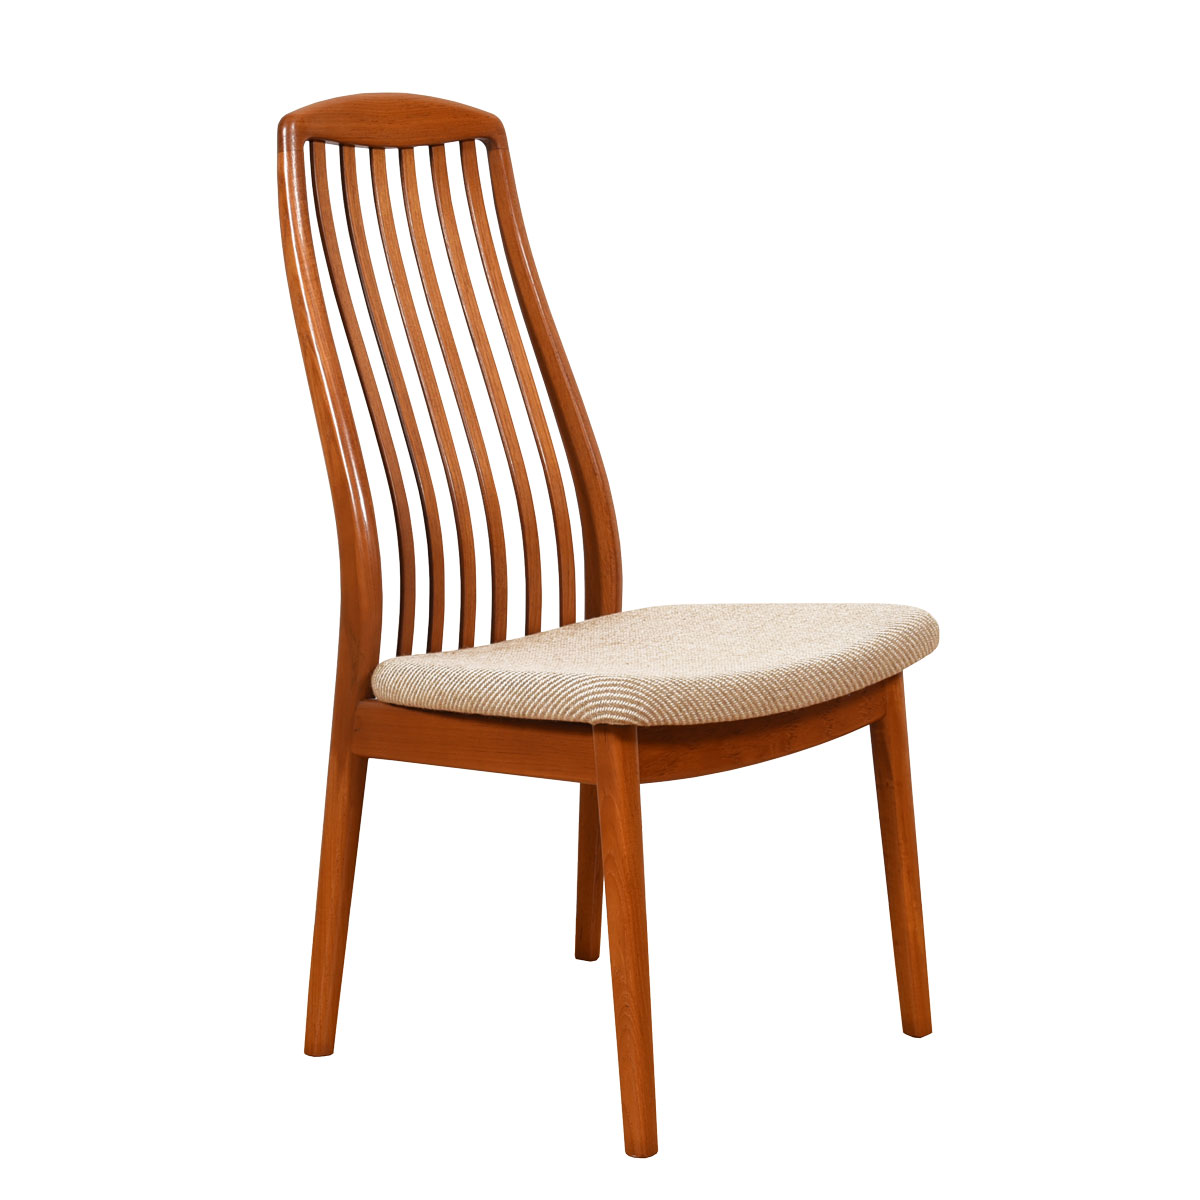 Set of 6 Teak Danish Modern Curved Slatted-Back Dining Chairs